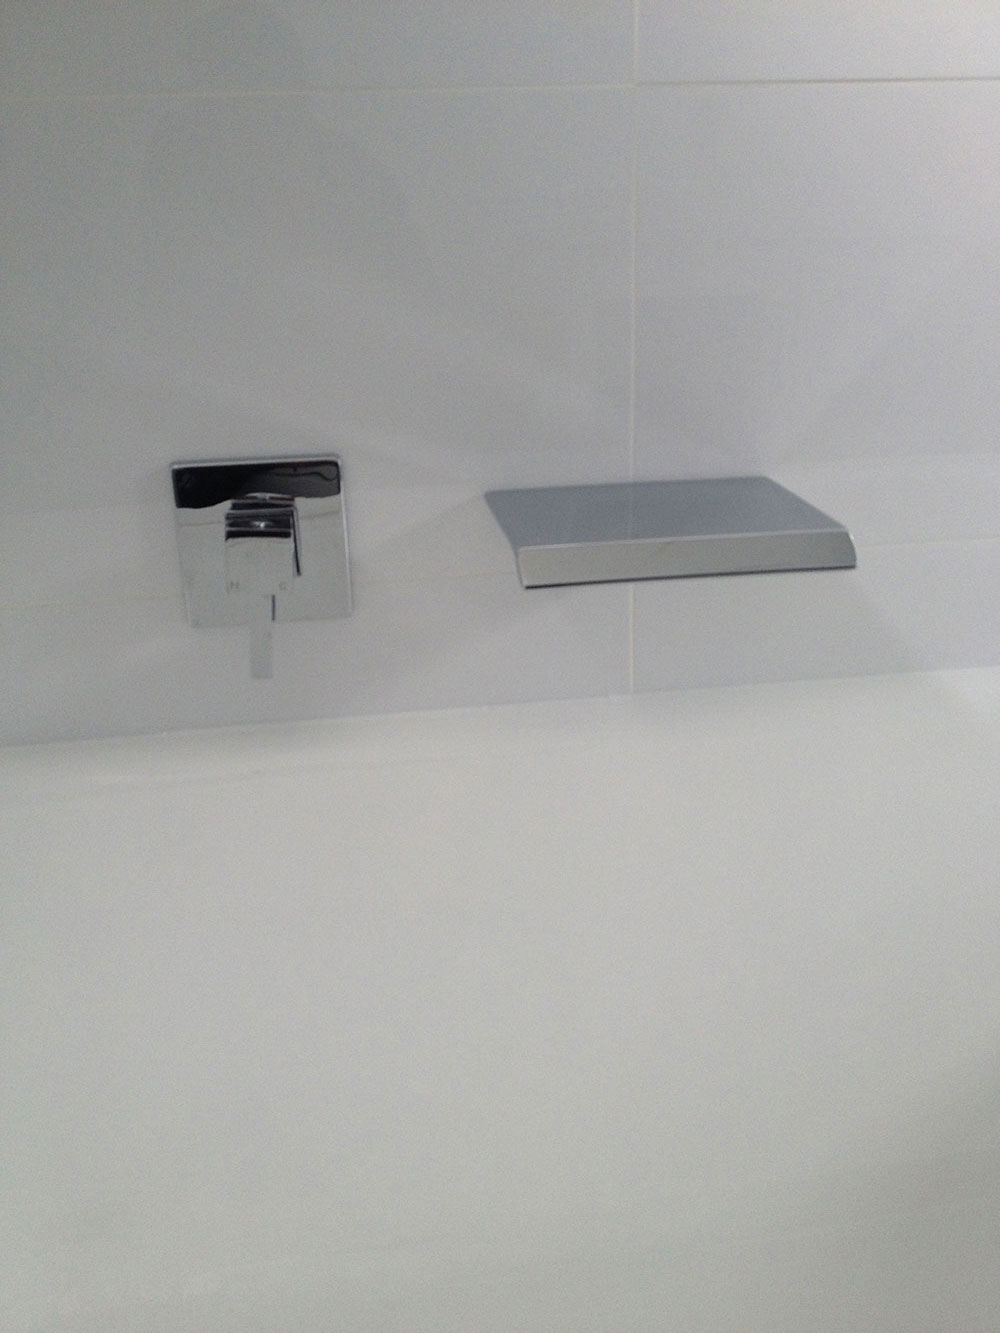 Bath Tub With Designr Style Mixer & Bath Spout From Optimised Range